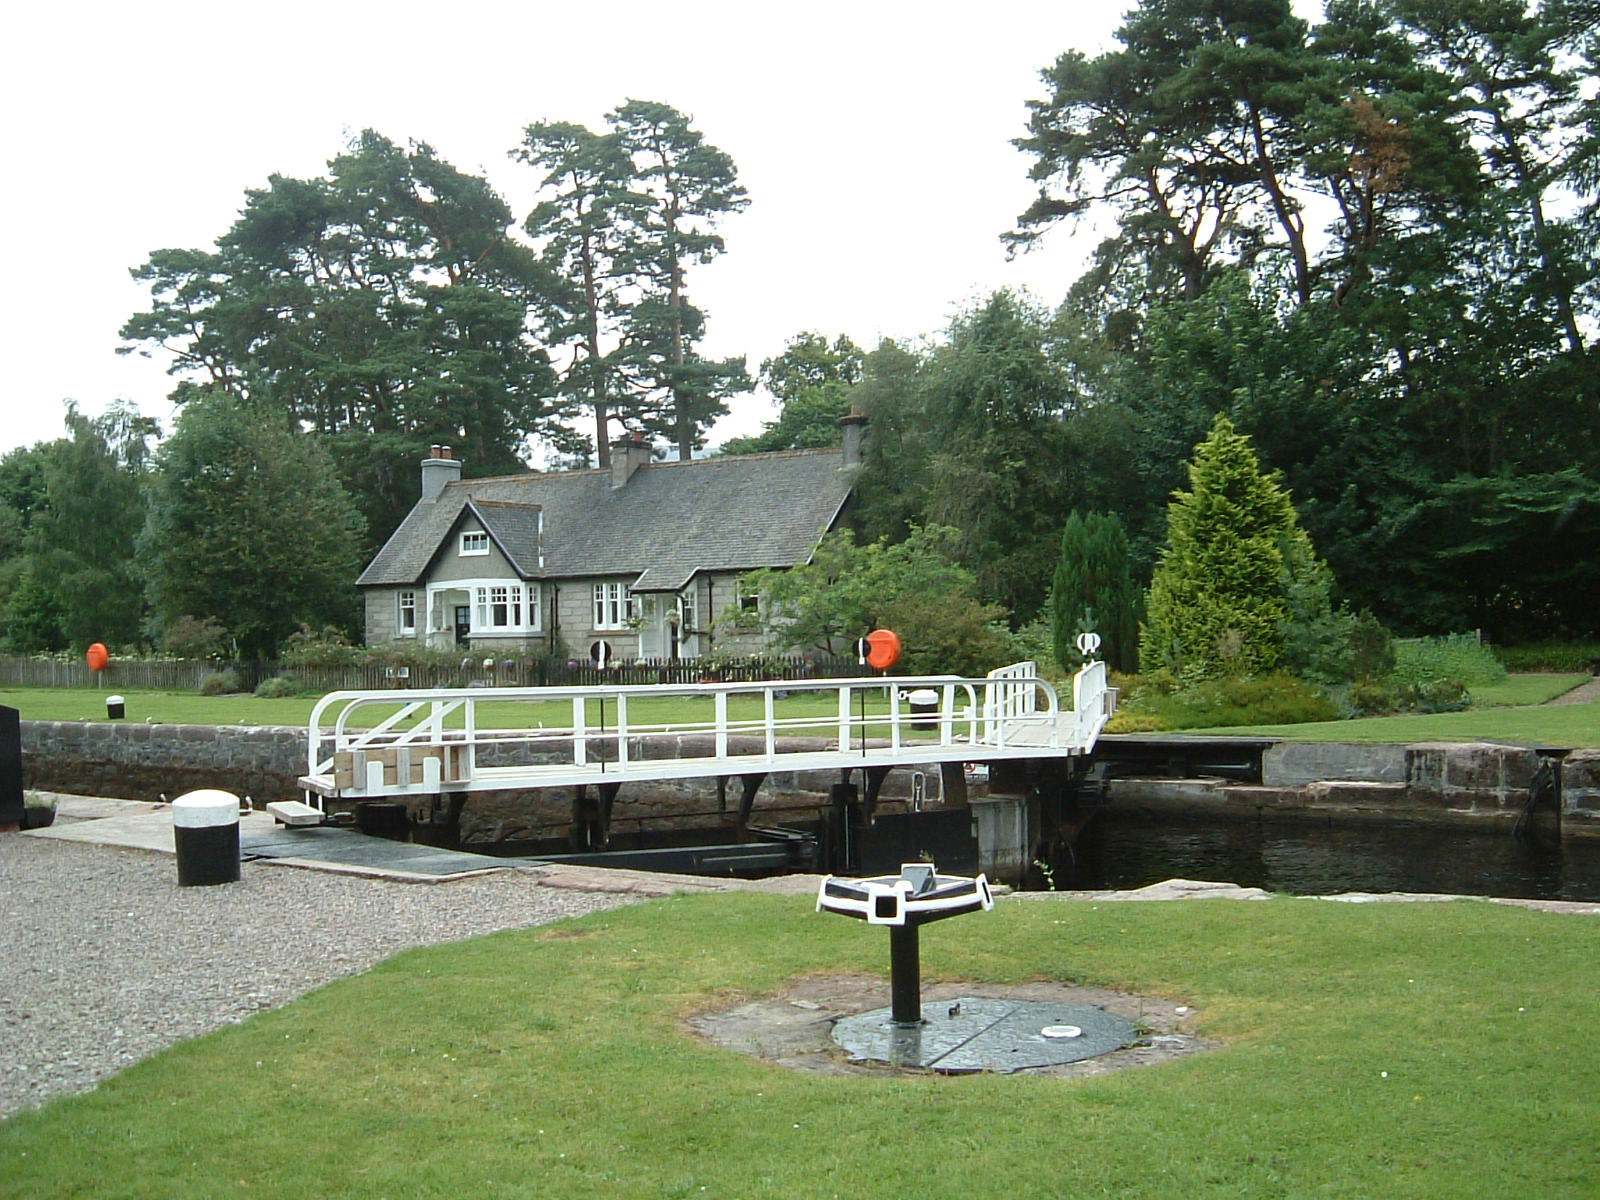 Kyltra Lock on the Caledonian Canal